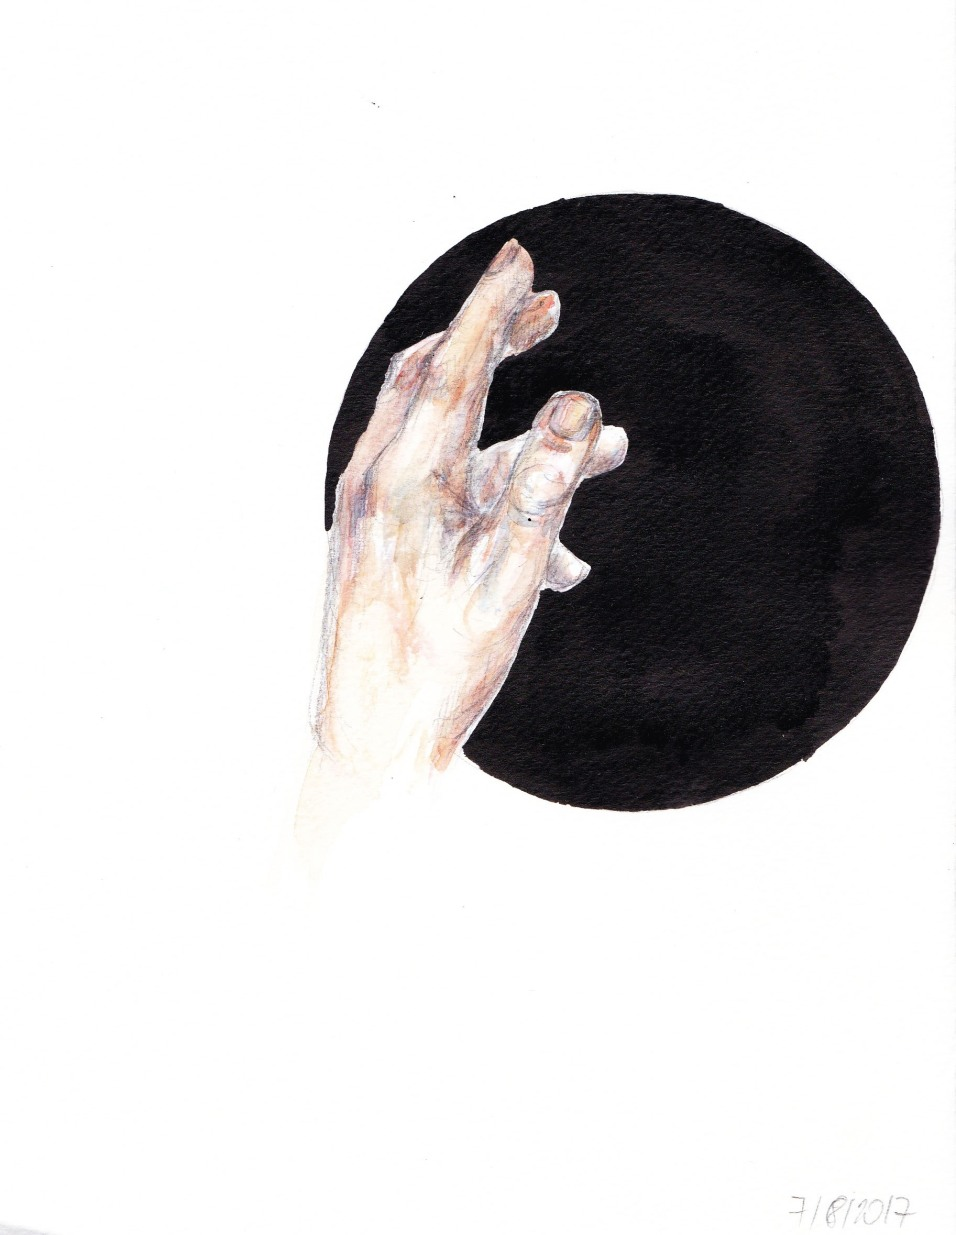 Inga Lineviciute - The Hand, Ink and watercolour on paper, 20.5 x 16 cm, 2017